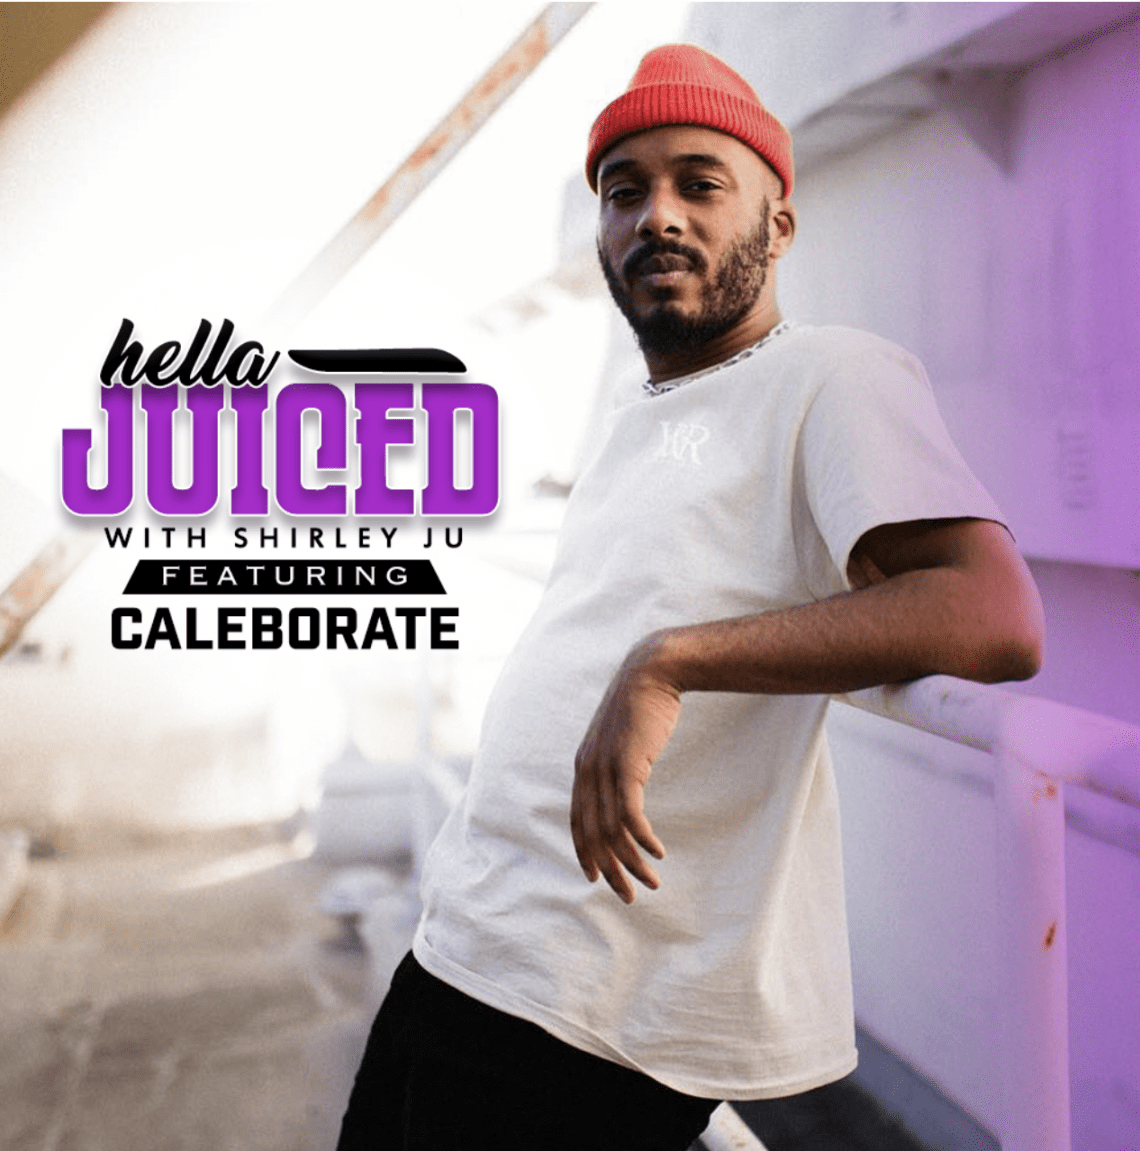 Hella Juiced: Caleborate